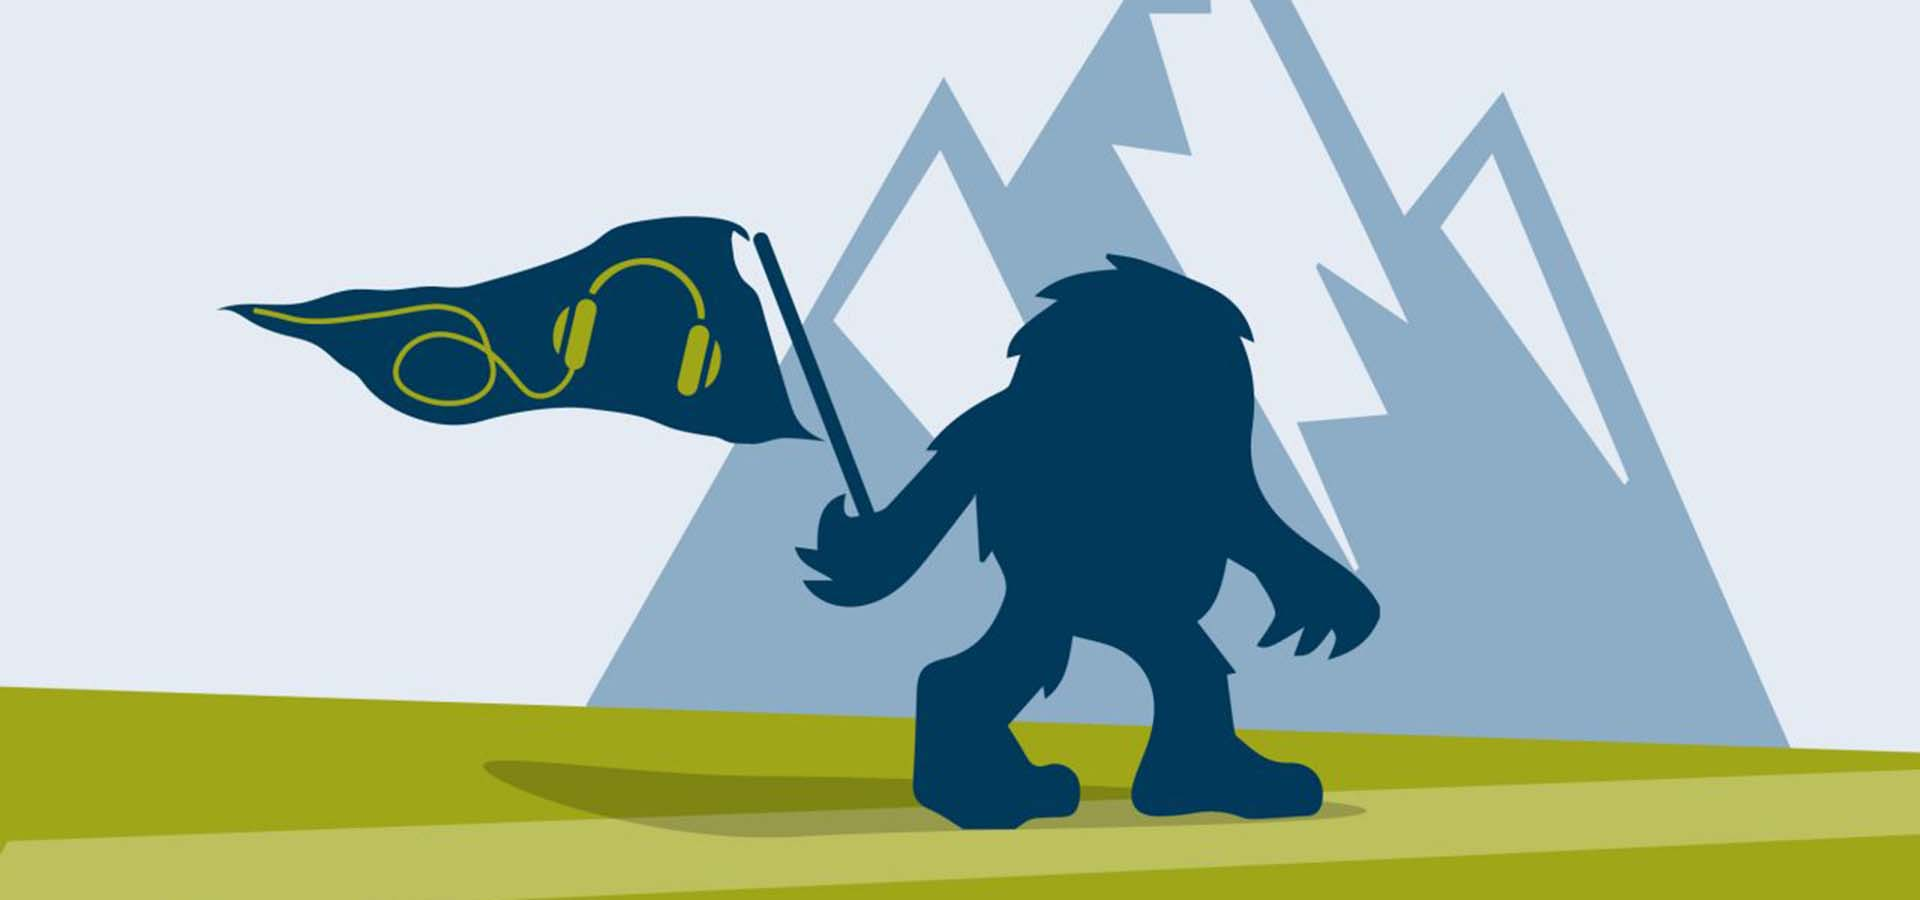 Cartoon of mountains, forest creature holding a podcast flag